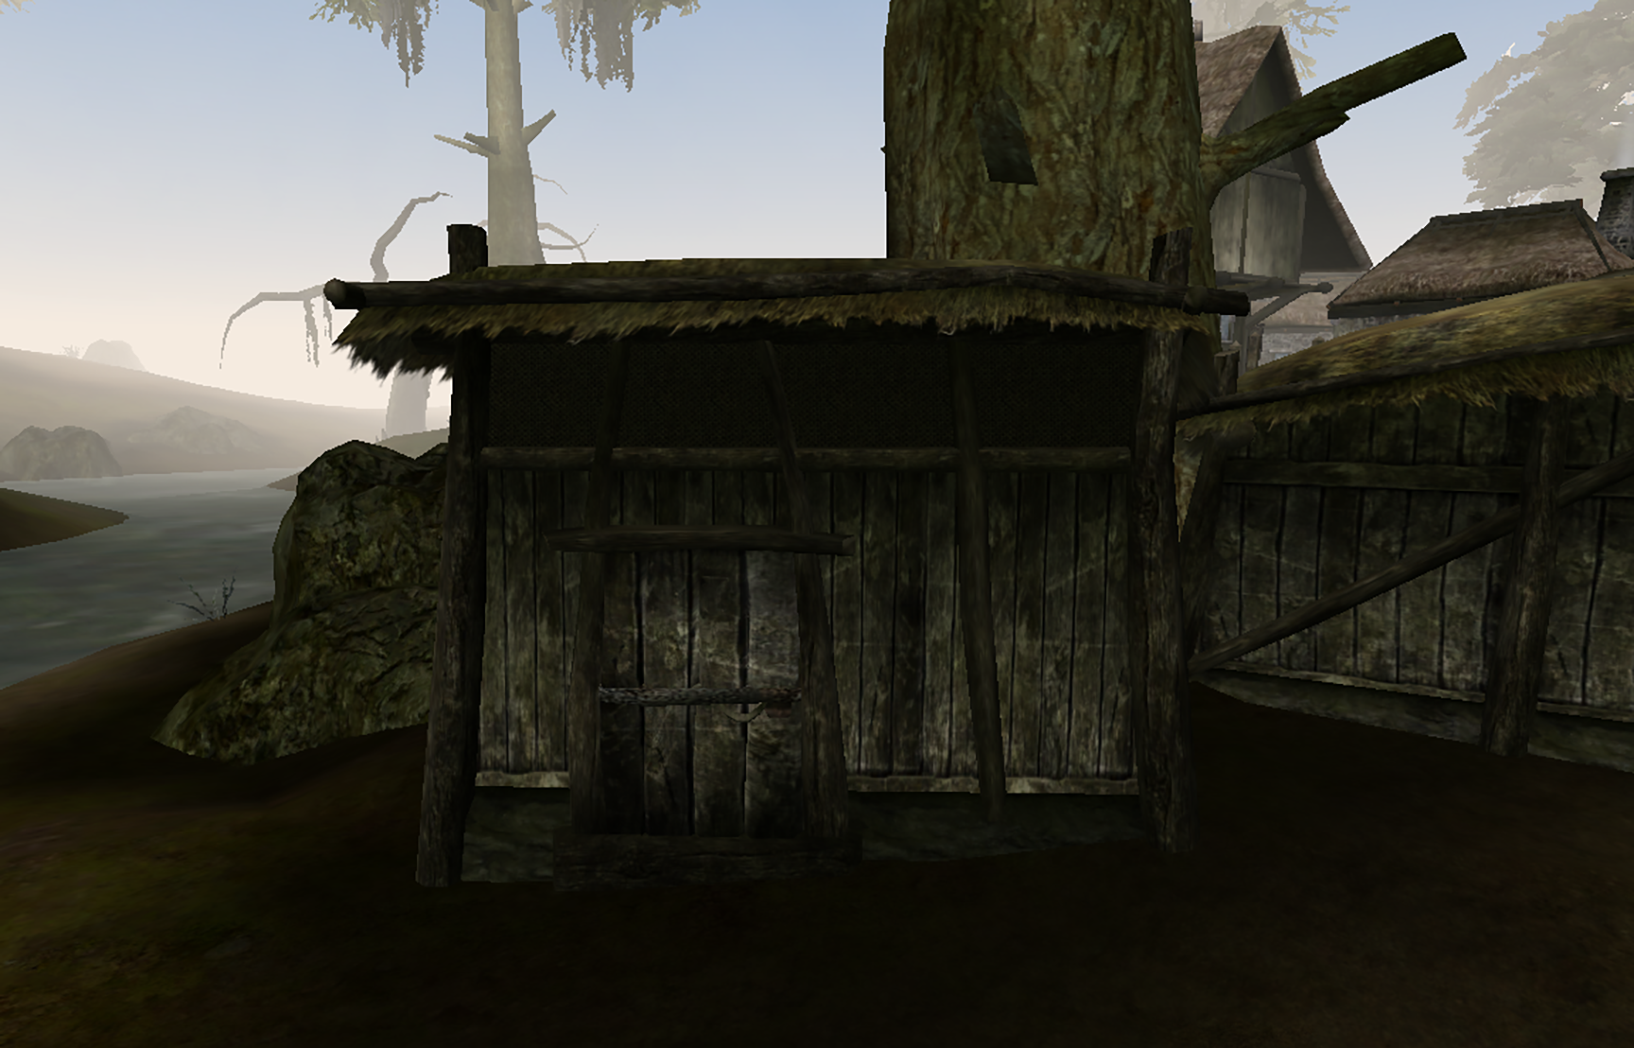 Fine-Mouth's Shack